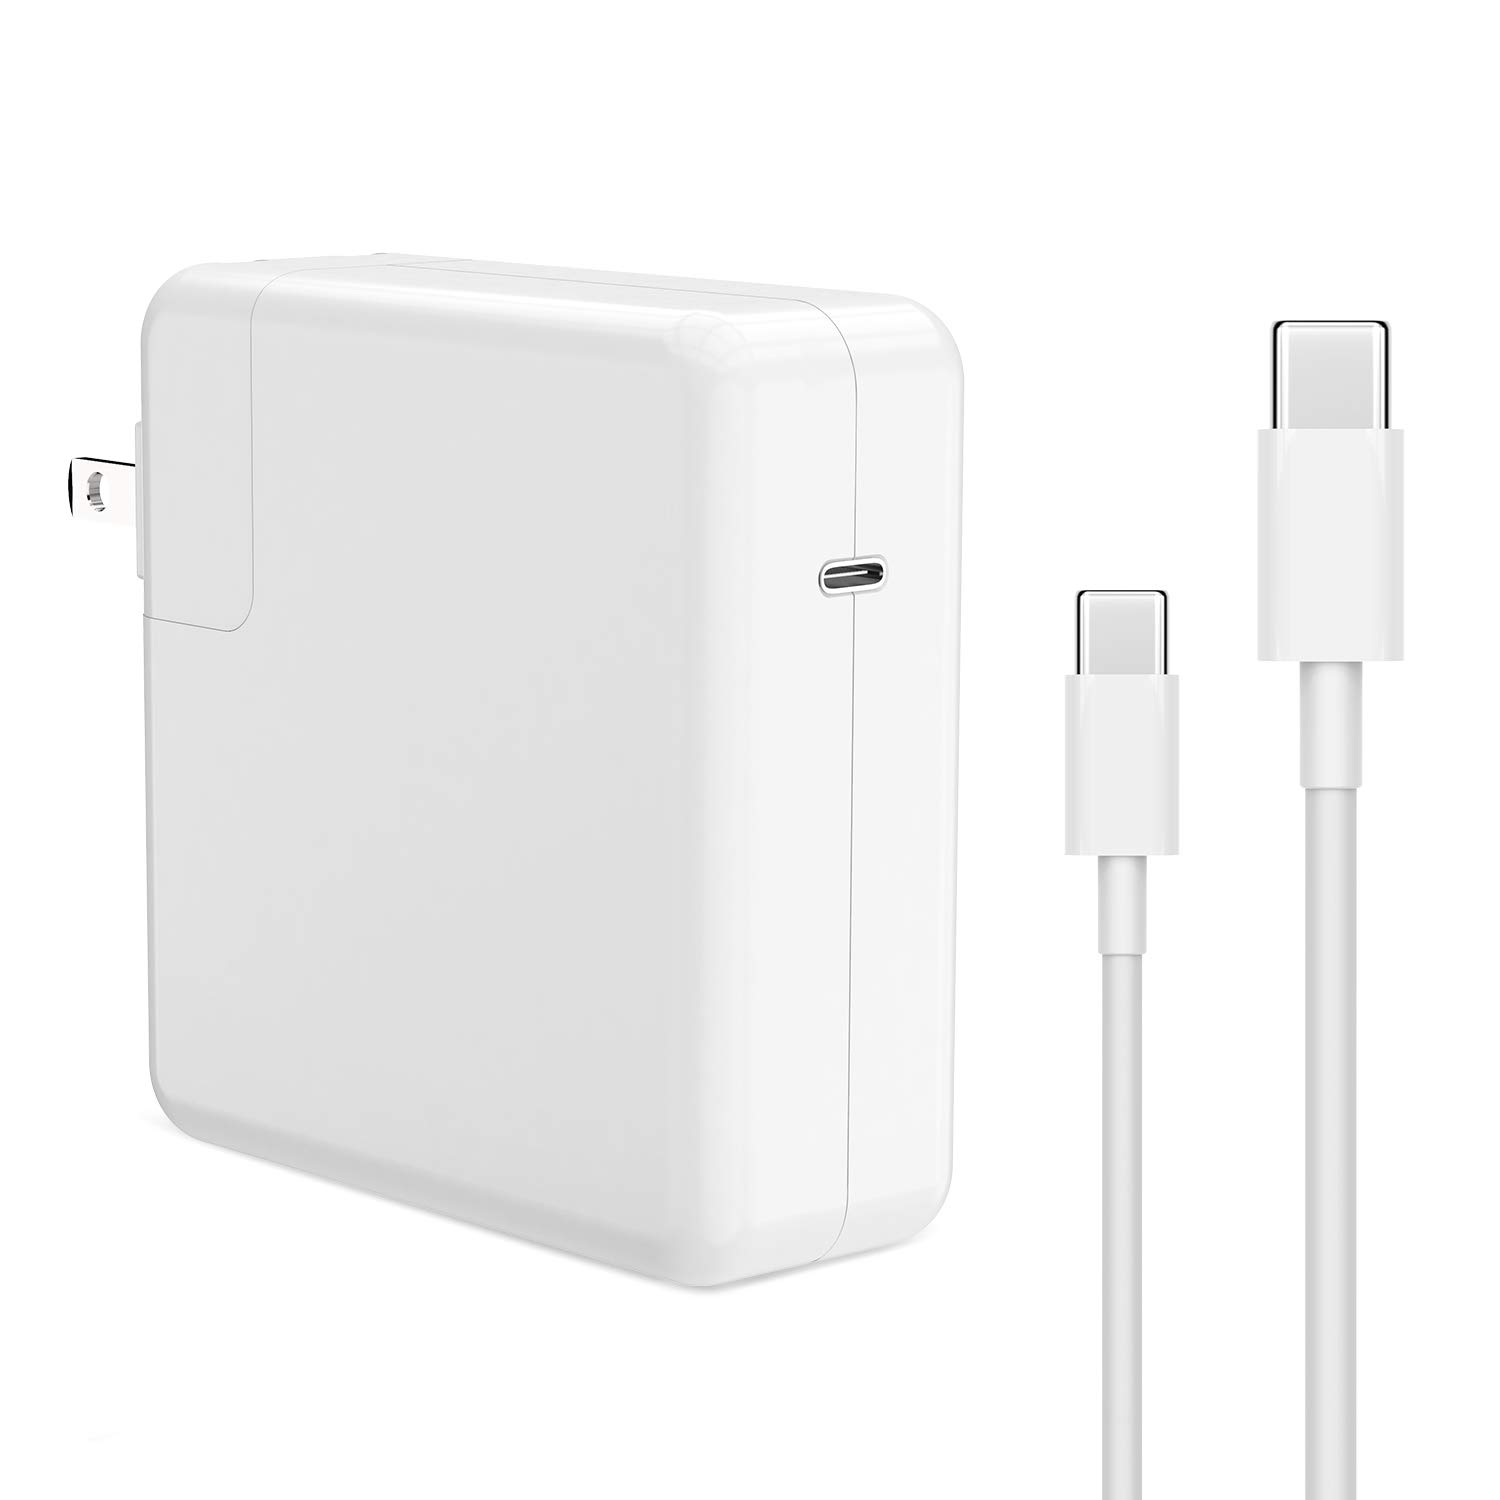 61W USB-C Power Adapter, AYNEFF MacBook Pro Charger, Foldable Adapter Compatible with MacBook Pro 13-inch,2018 MacBook Air, 2018 iPad Pro, Tablet with USB-C to USB-C Charging Cable